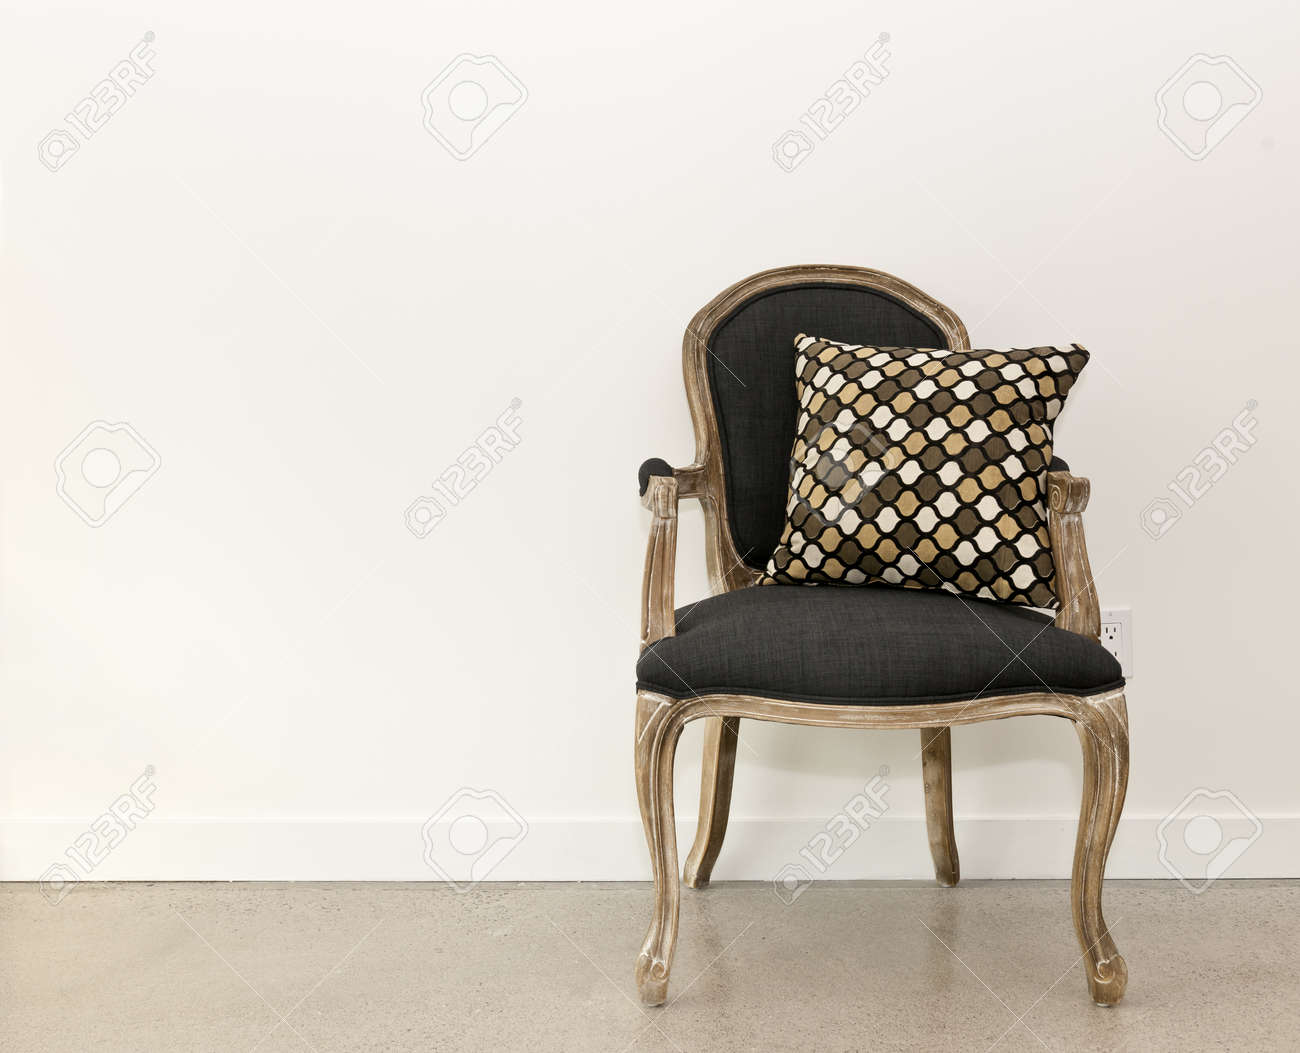 photo antique armchair furniture with cushion against white wall